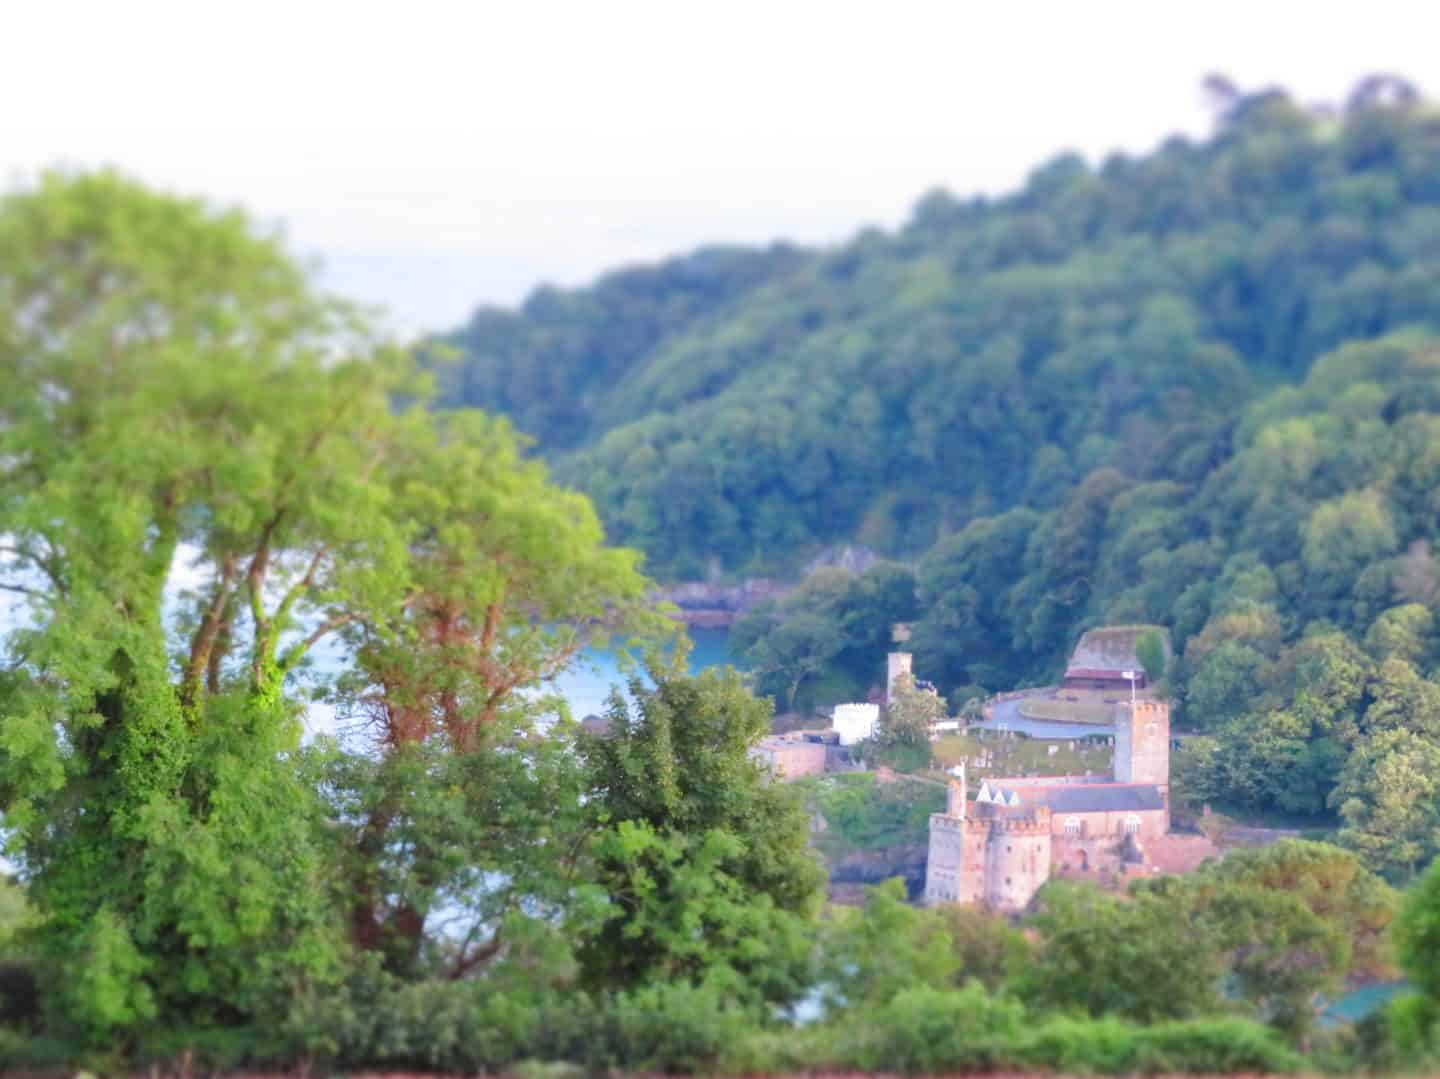 view of Dartmouth castle from Feather Down glamping